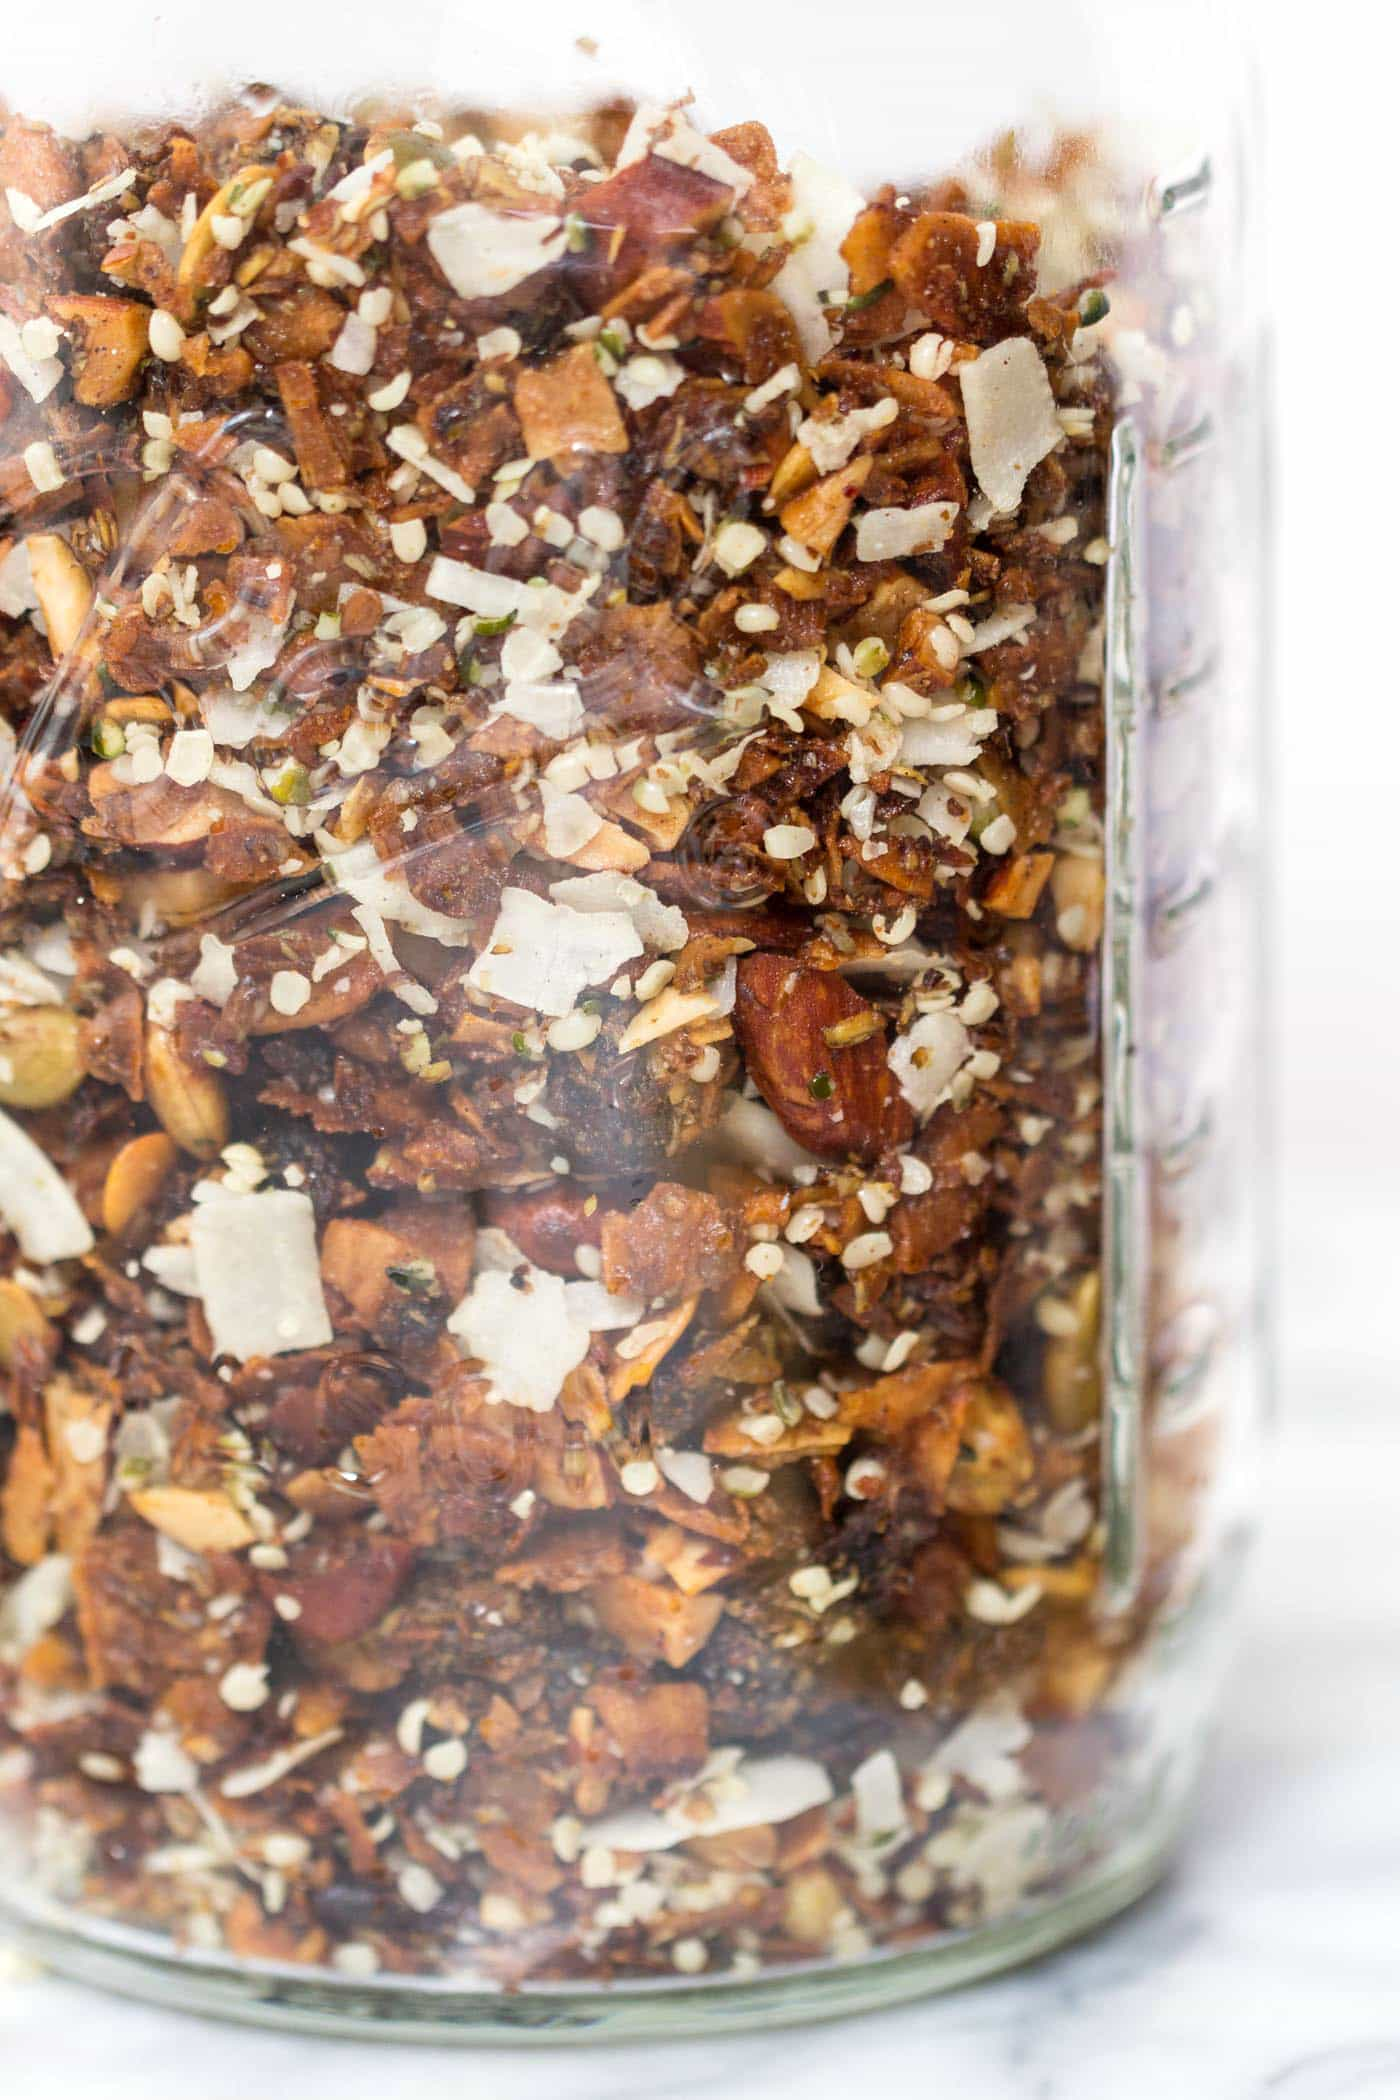 This grain-free coconut granola is the PERFECT recipe for those avoiding oats or living on the paleo diet!